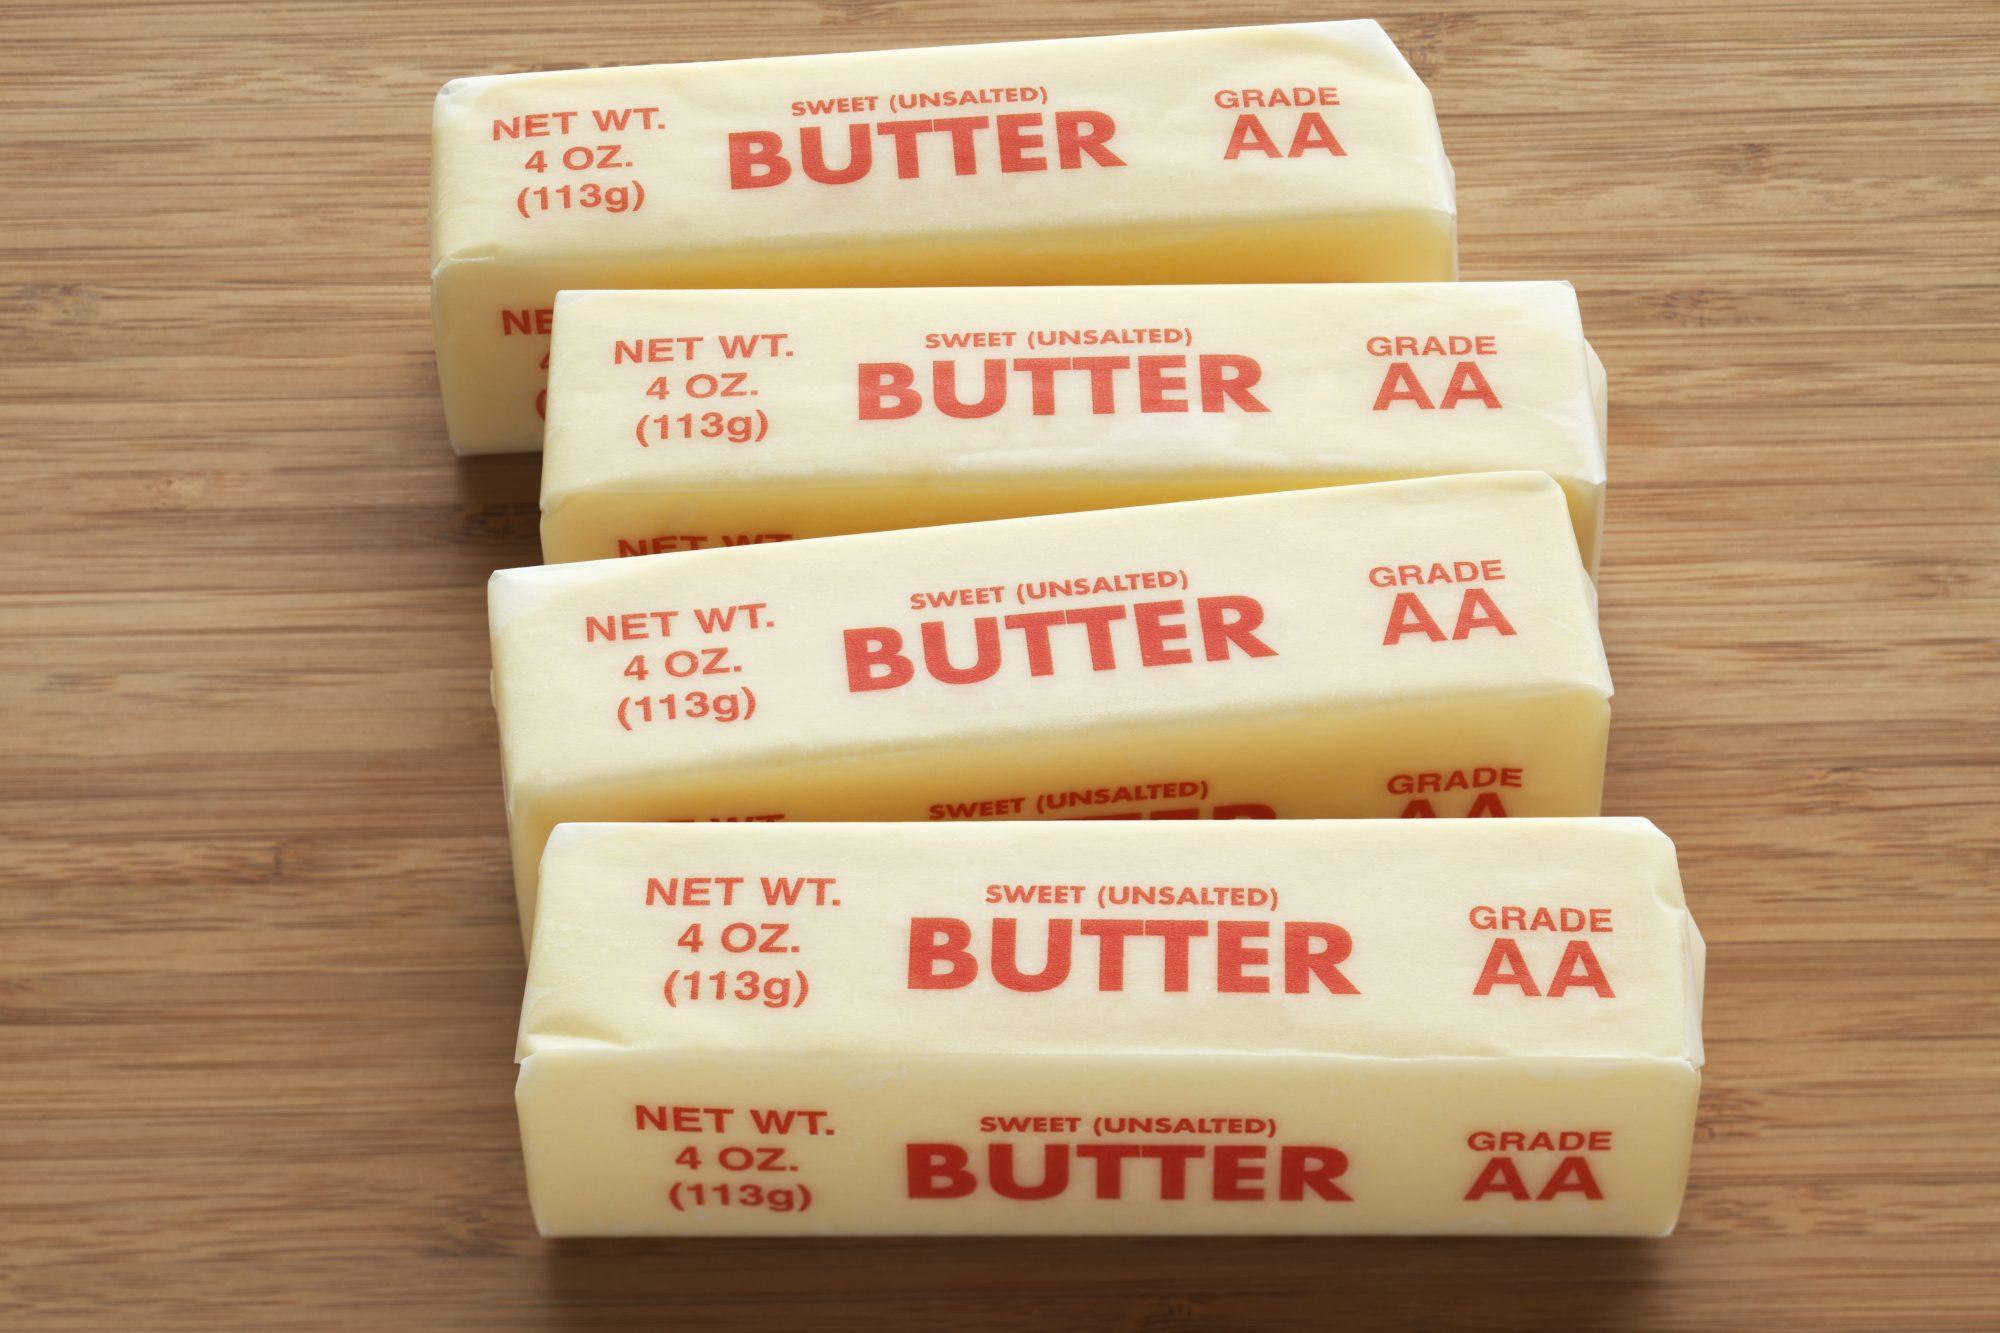 Four sticks of sweet unsalted butter in wrappers